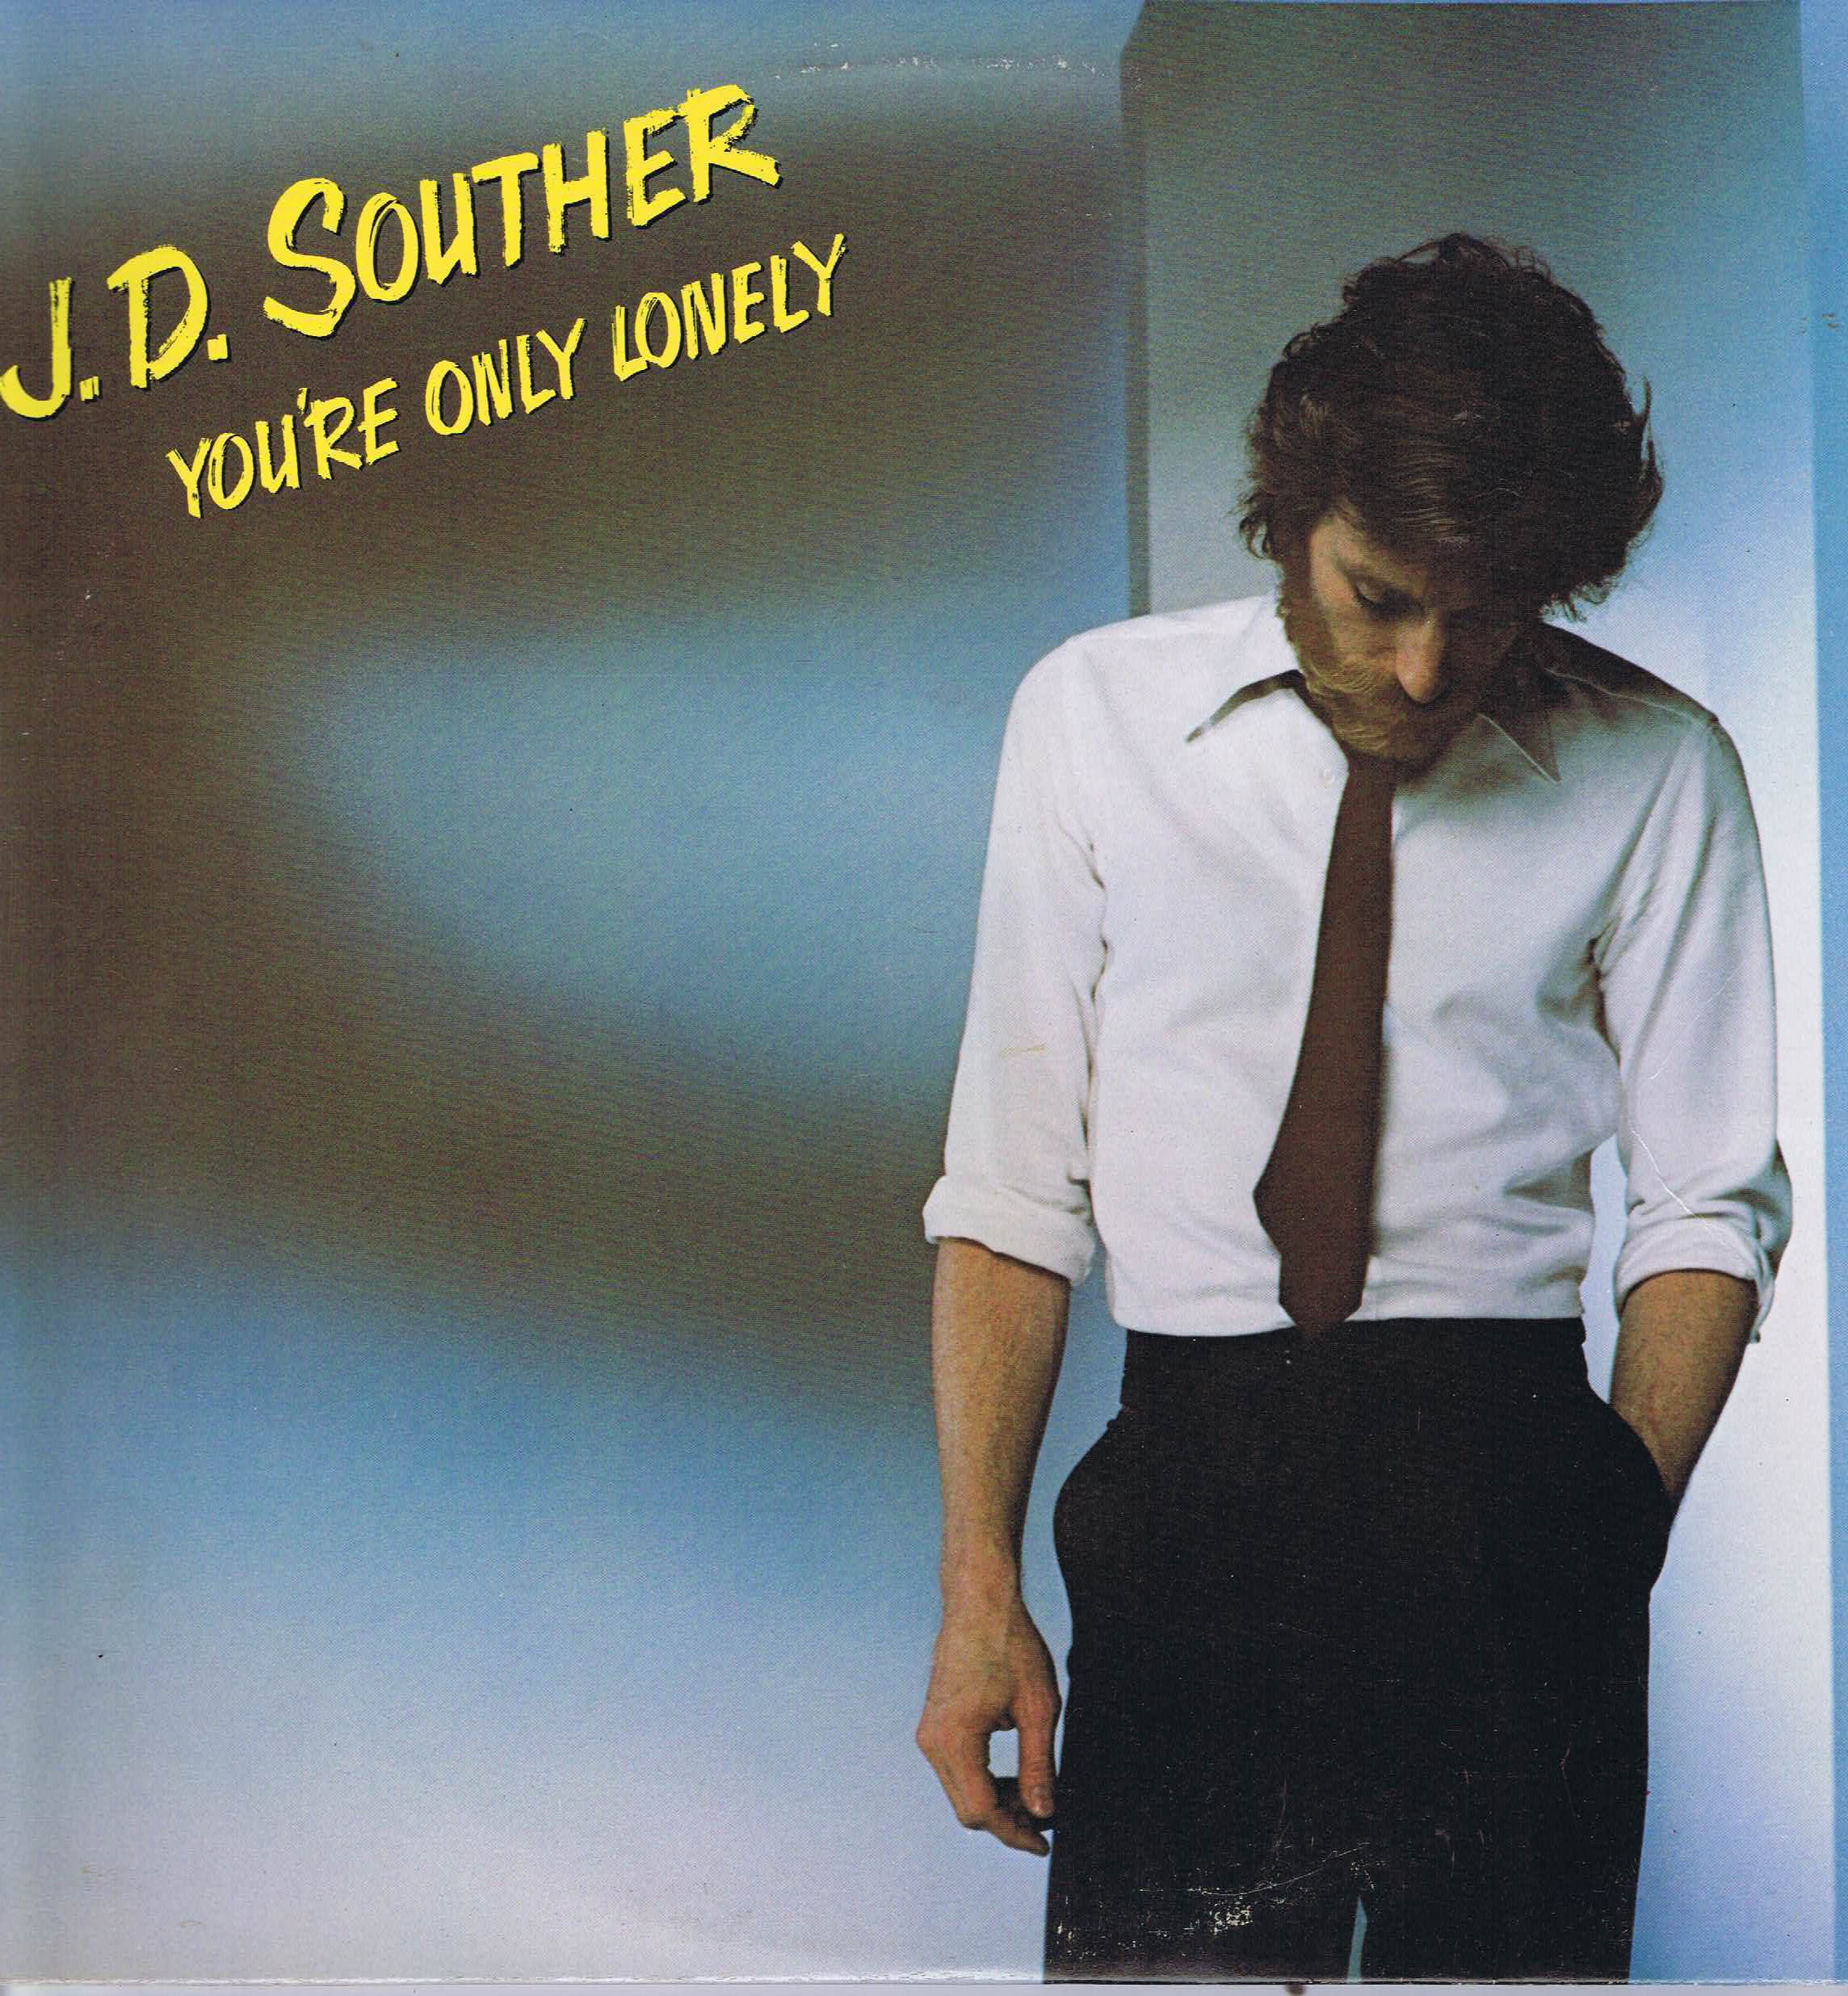 J.D. Souther - You're Only Lonely - JC 36093 - US Press LP ...